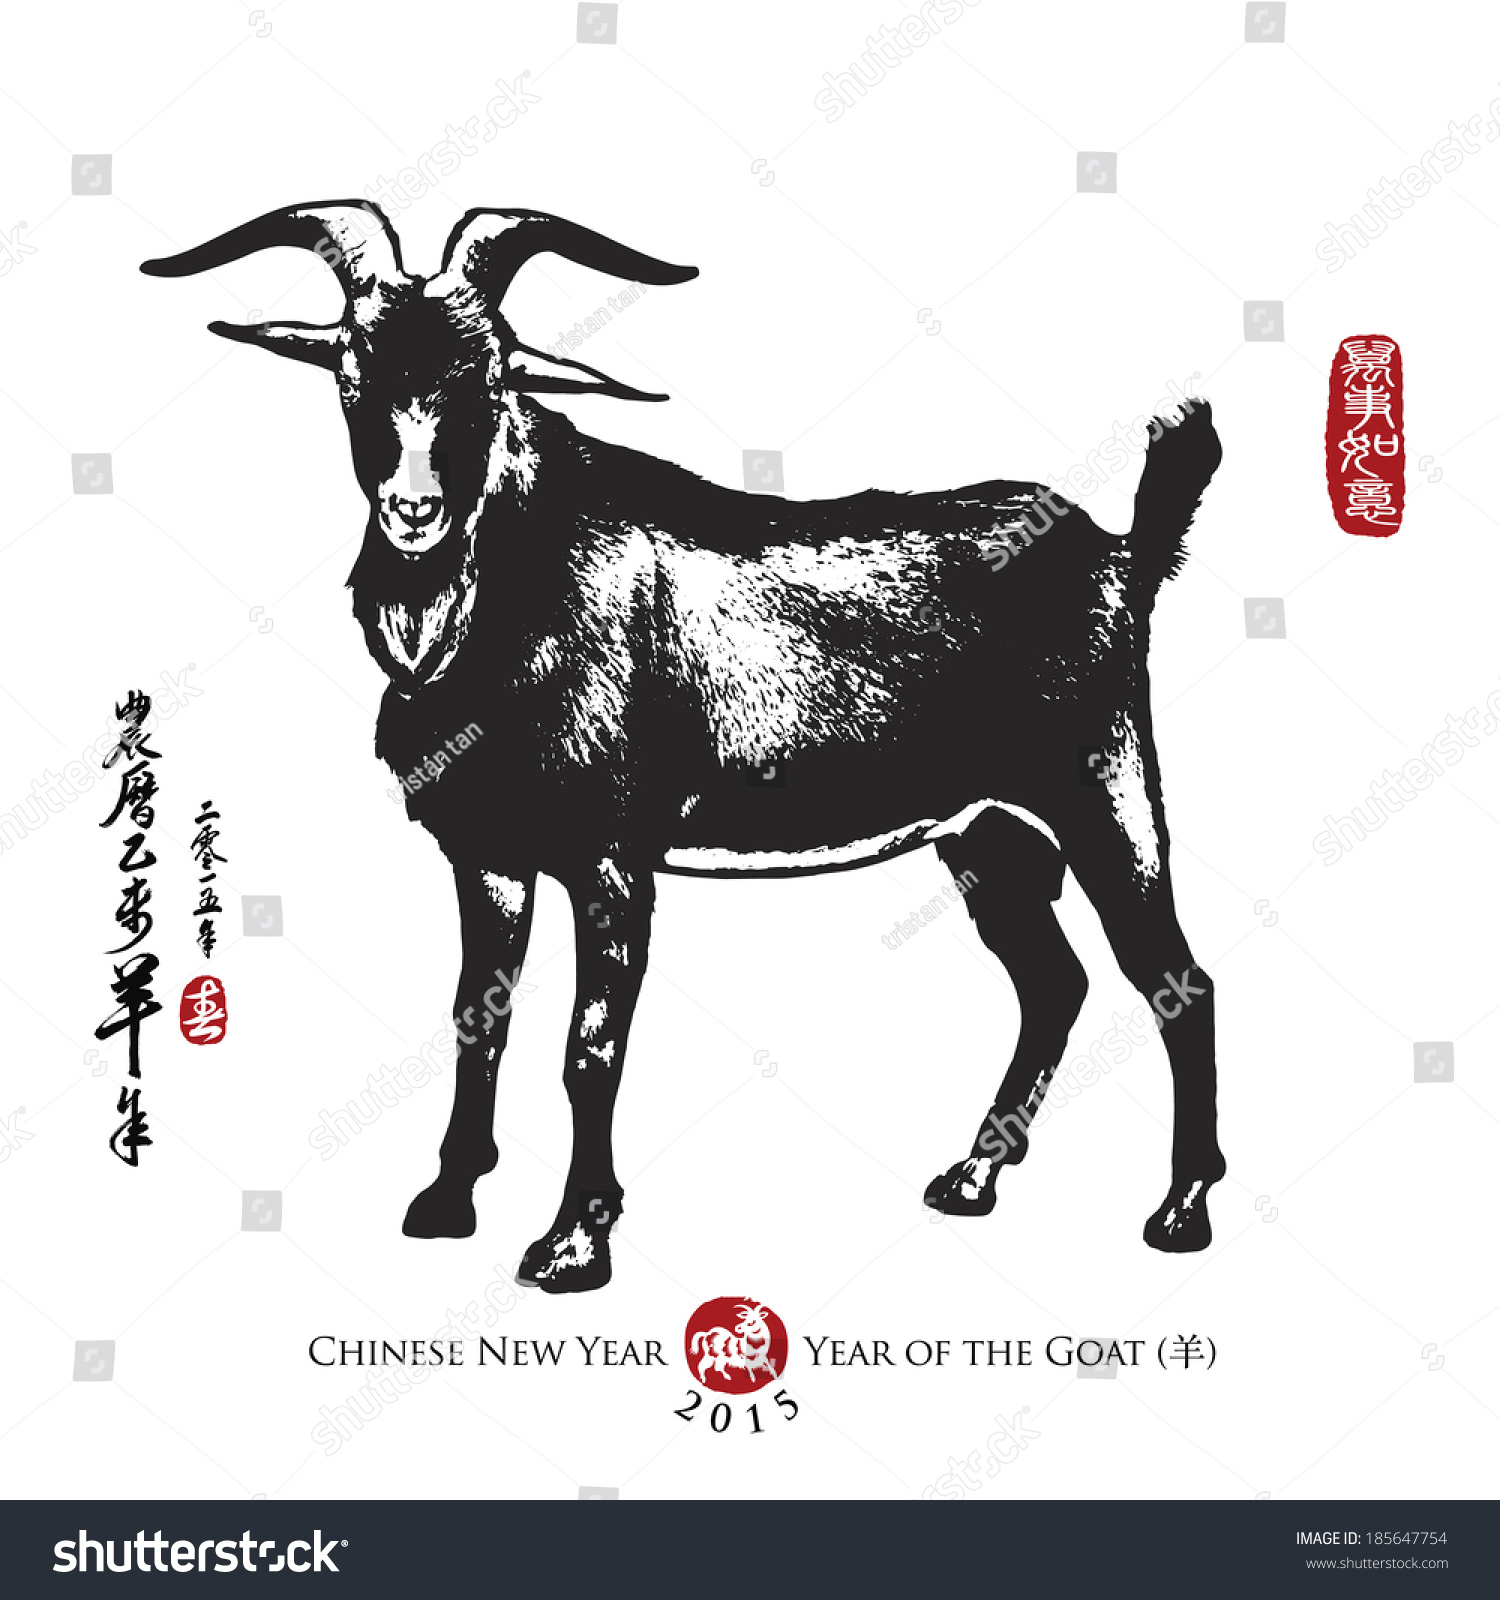 chinese new year 2015 rightside chinese seal translation everything is going very - Chinese New Year 2015 Animal